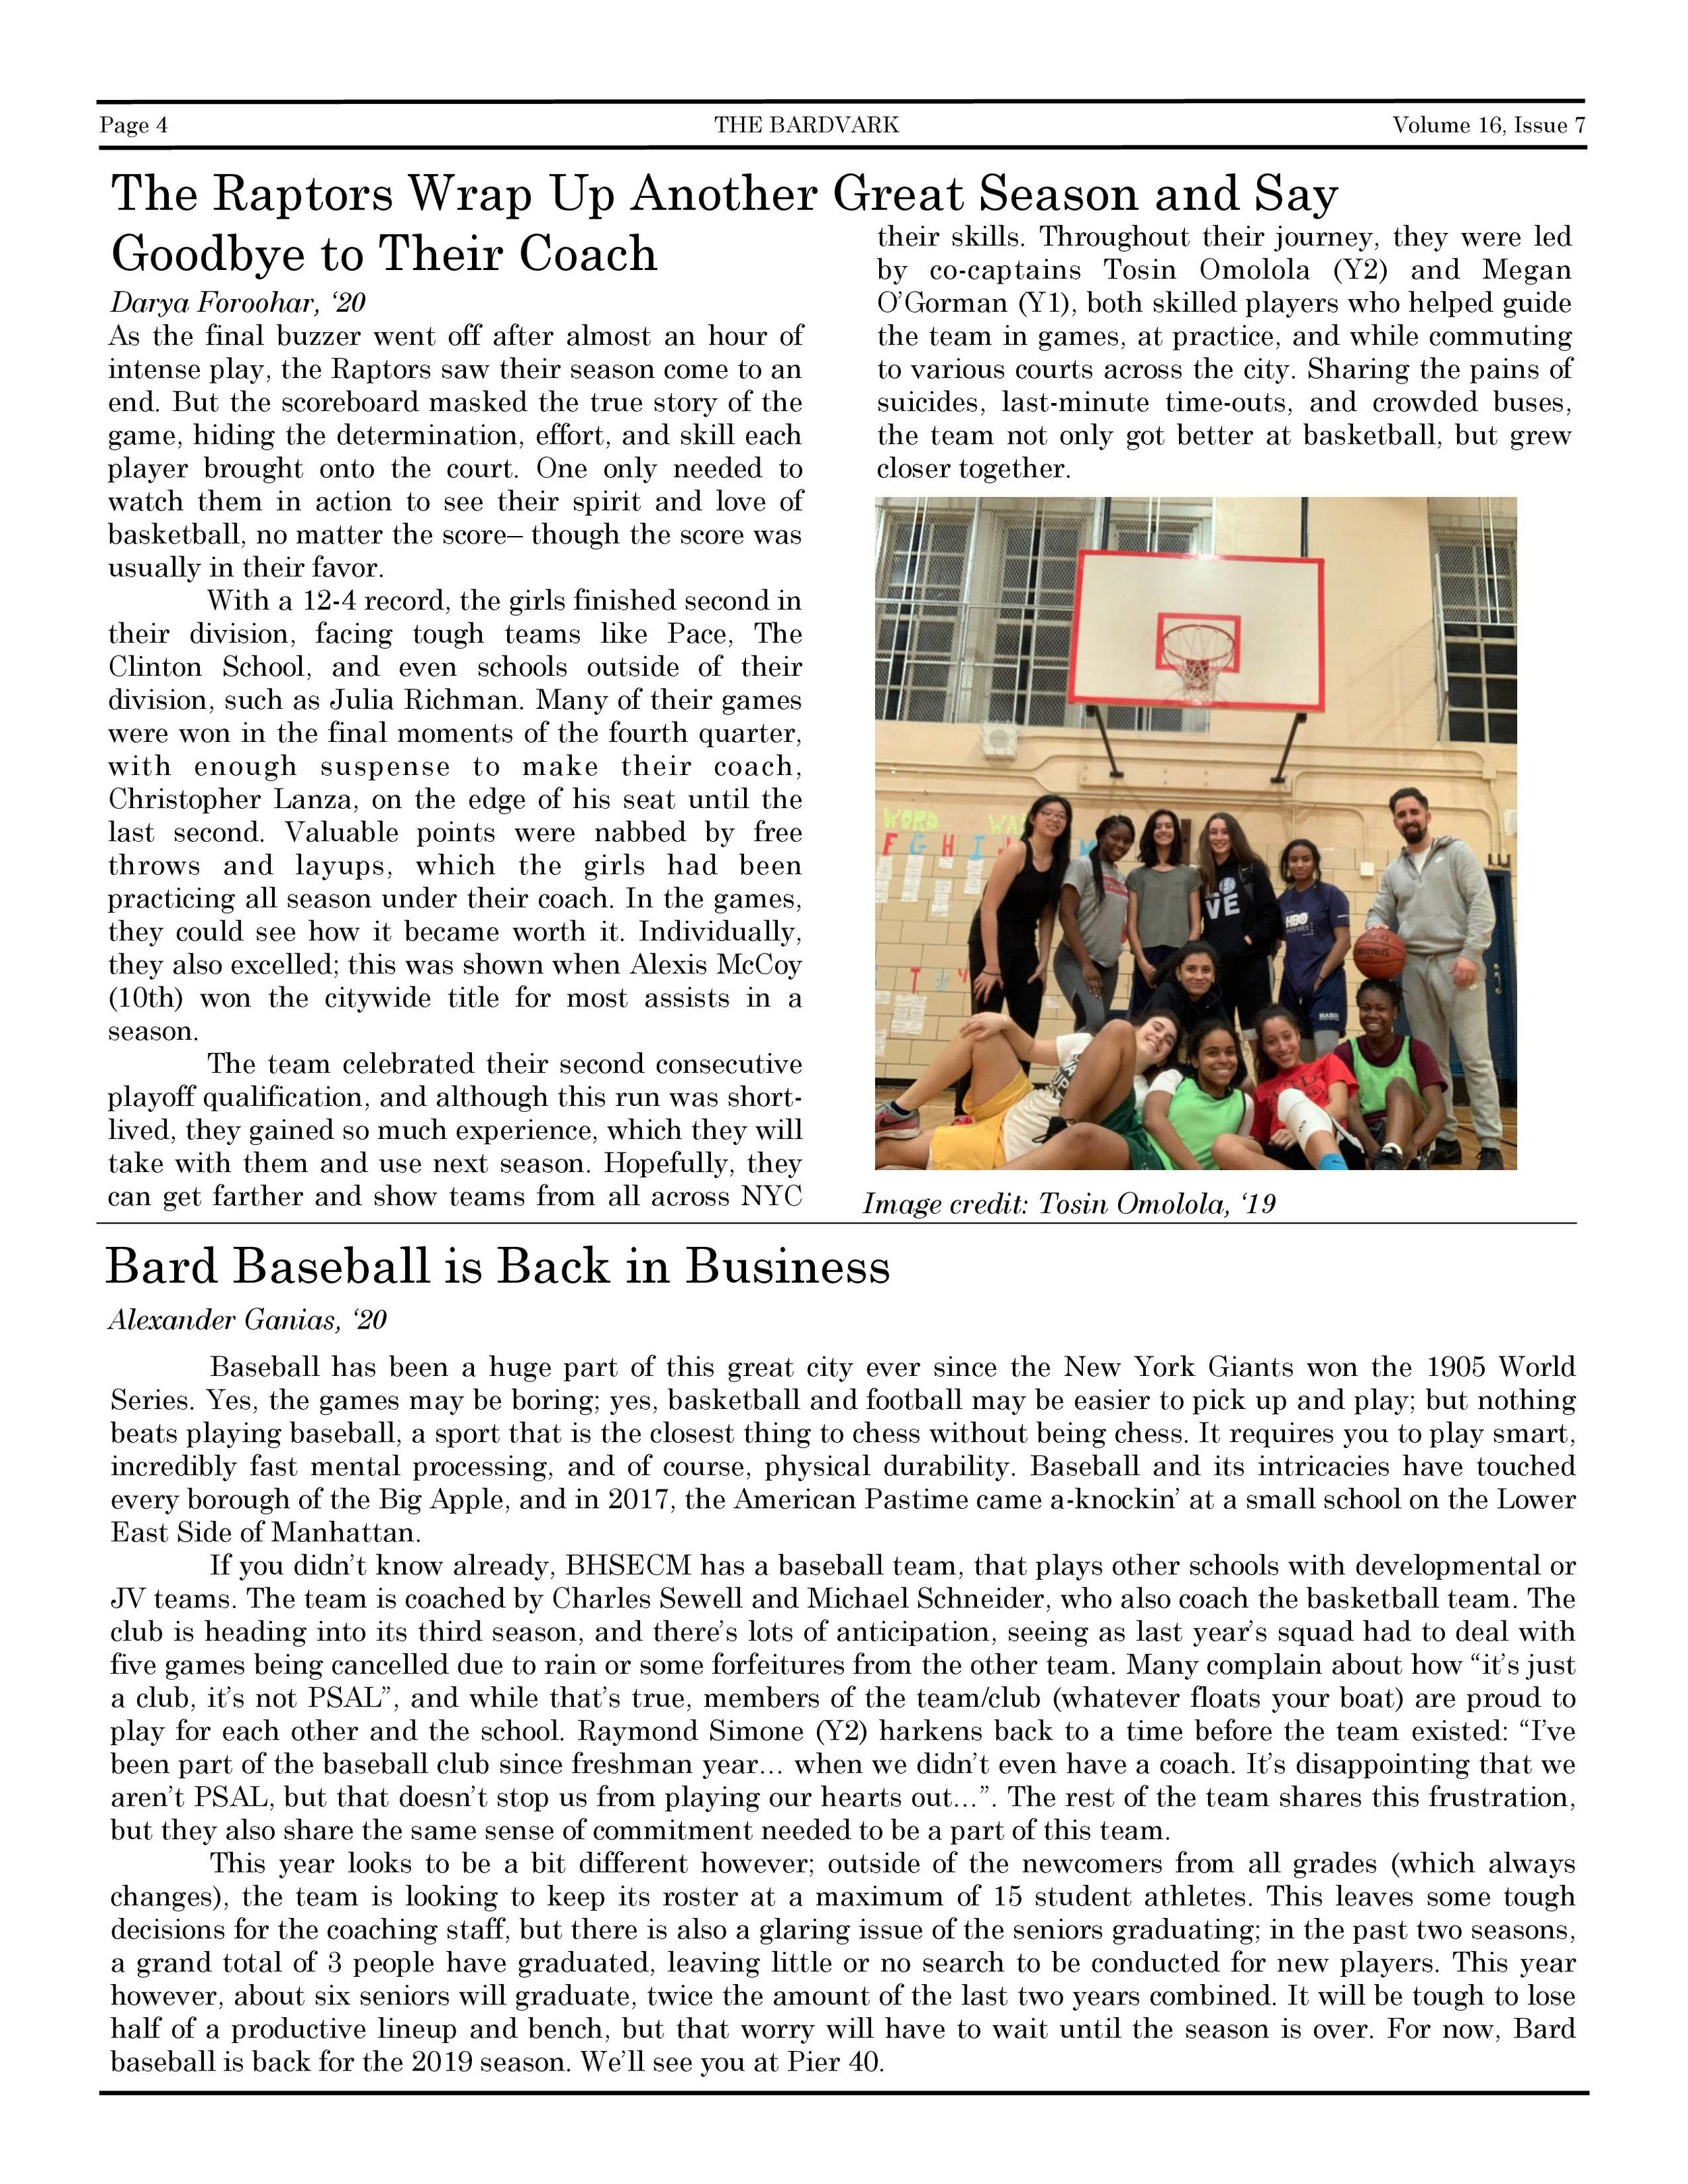 Issue 7 March 2019-4.jpg